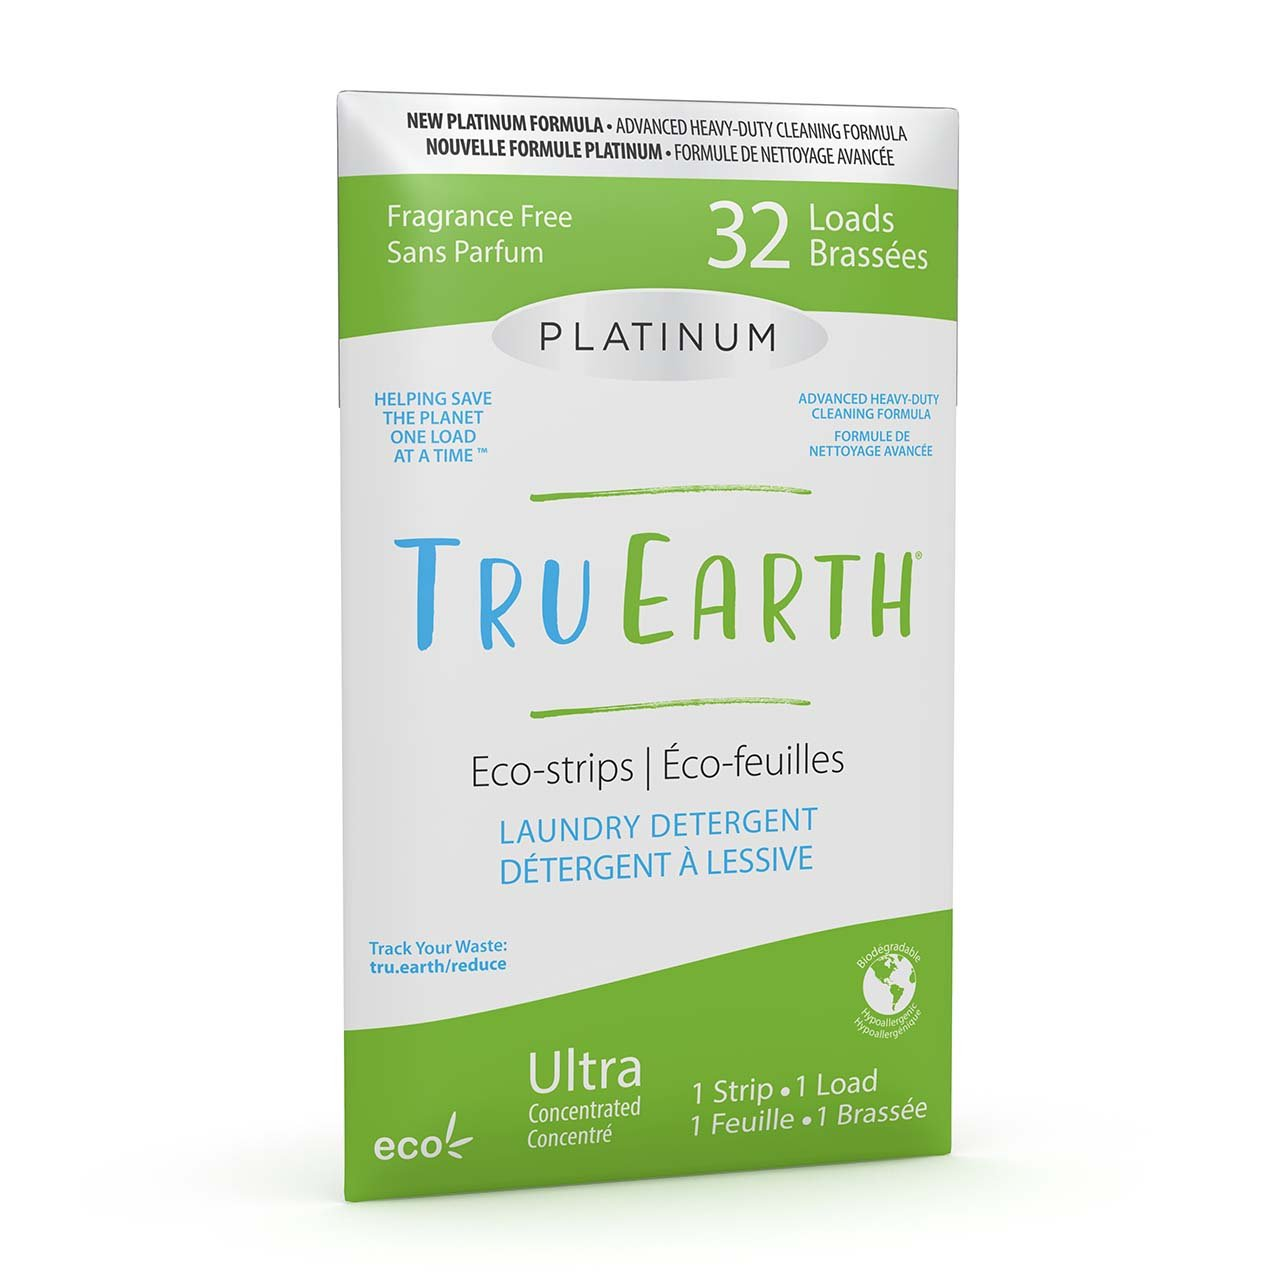 Eco-strips Laundry Detergent—PLATINUM